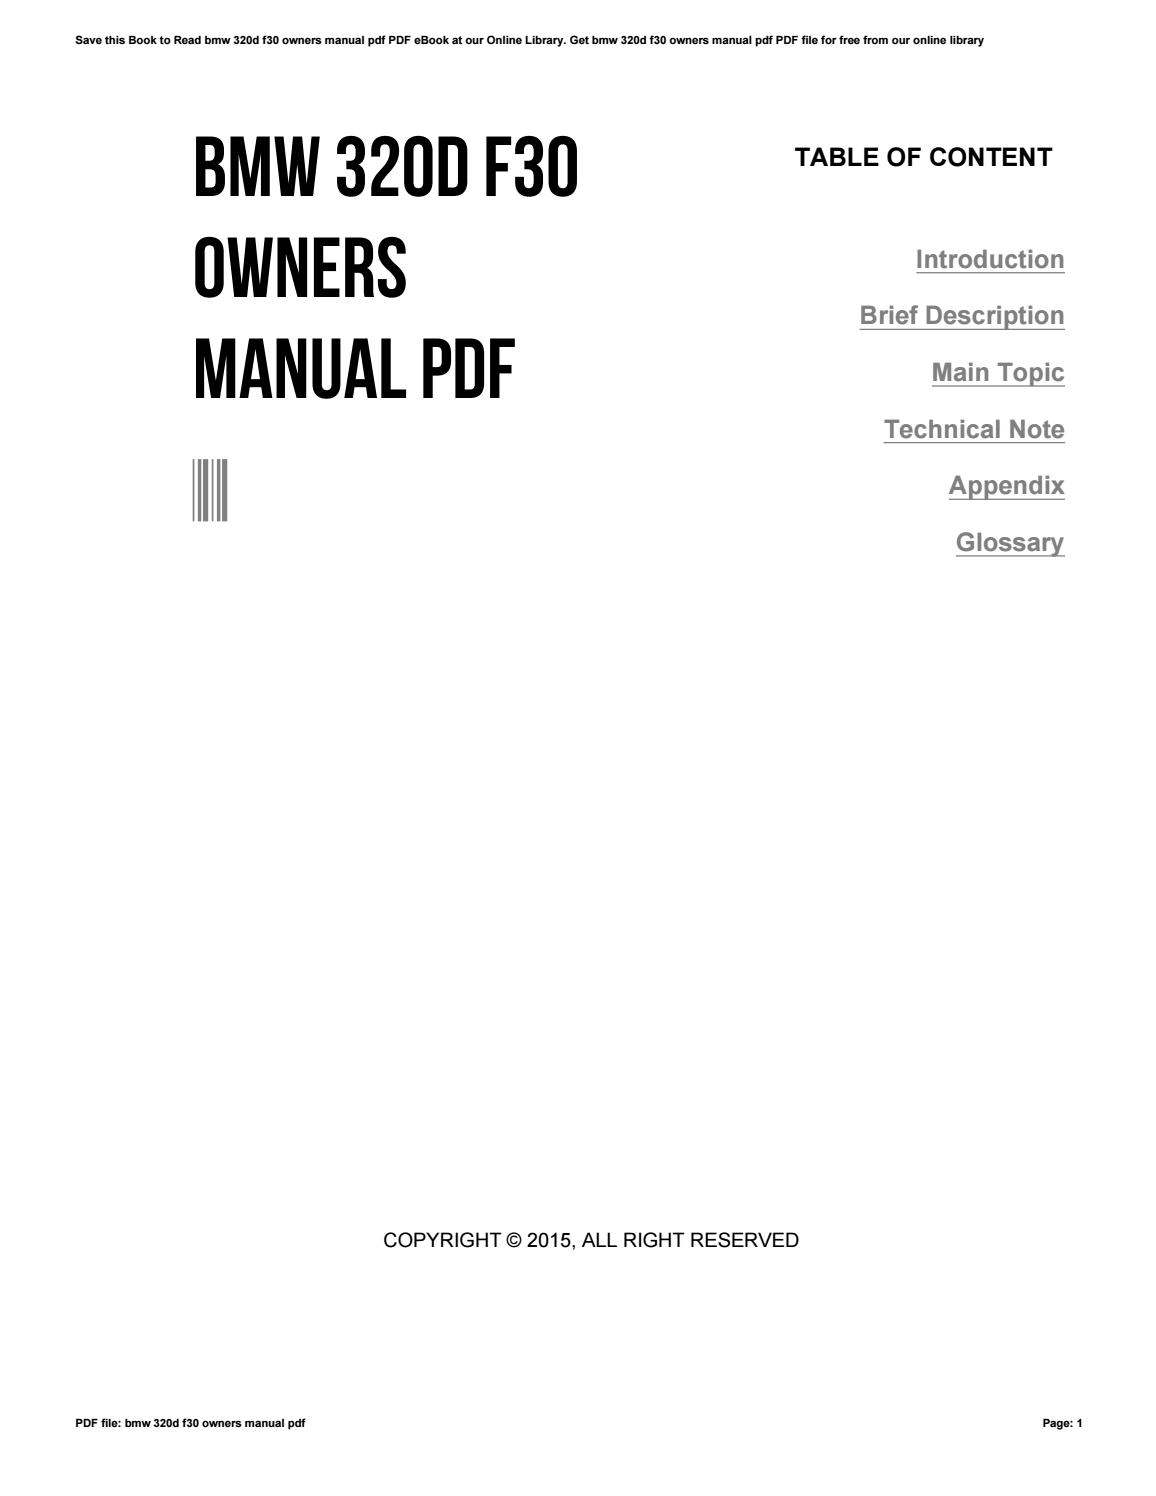 Bmw 320d F30 Owners Manual Pdf by andrewoconnor741 - issuu